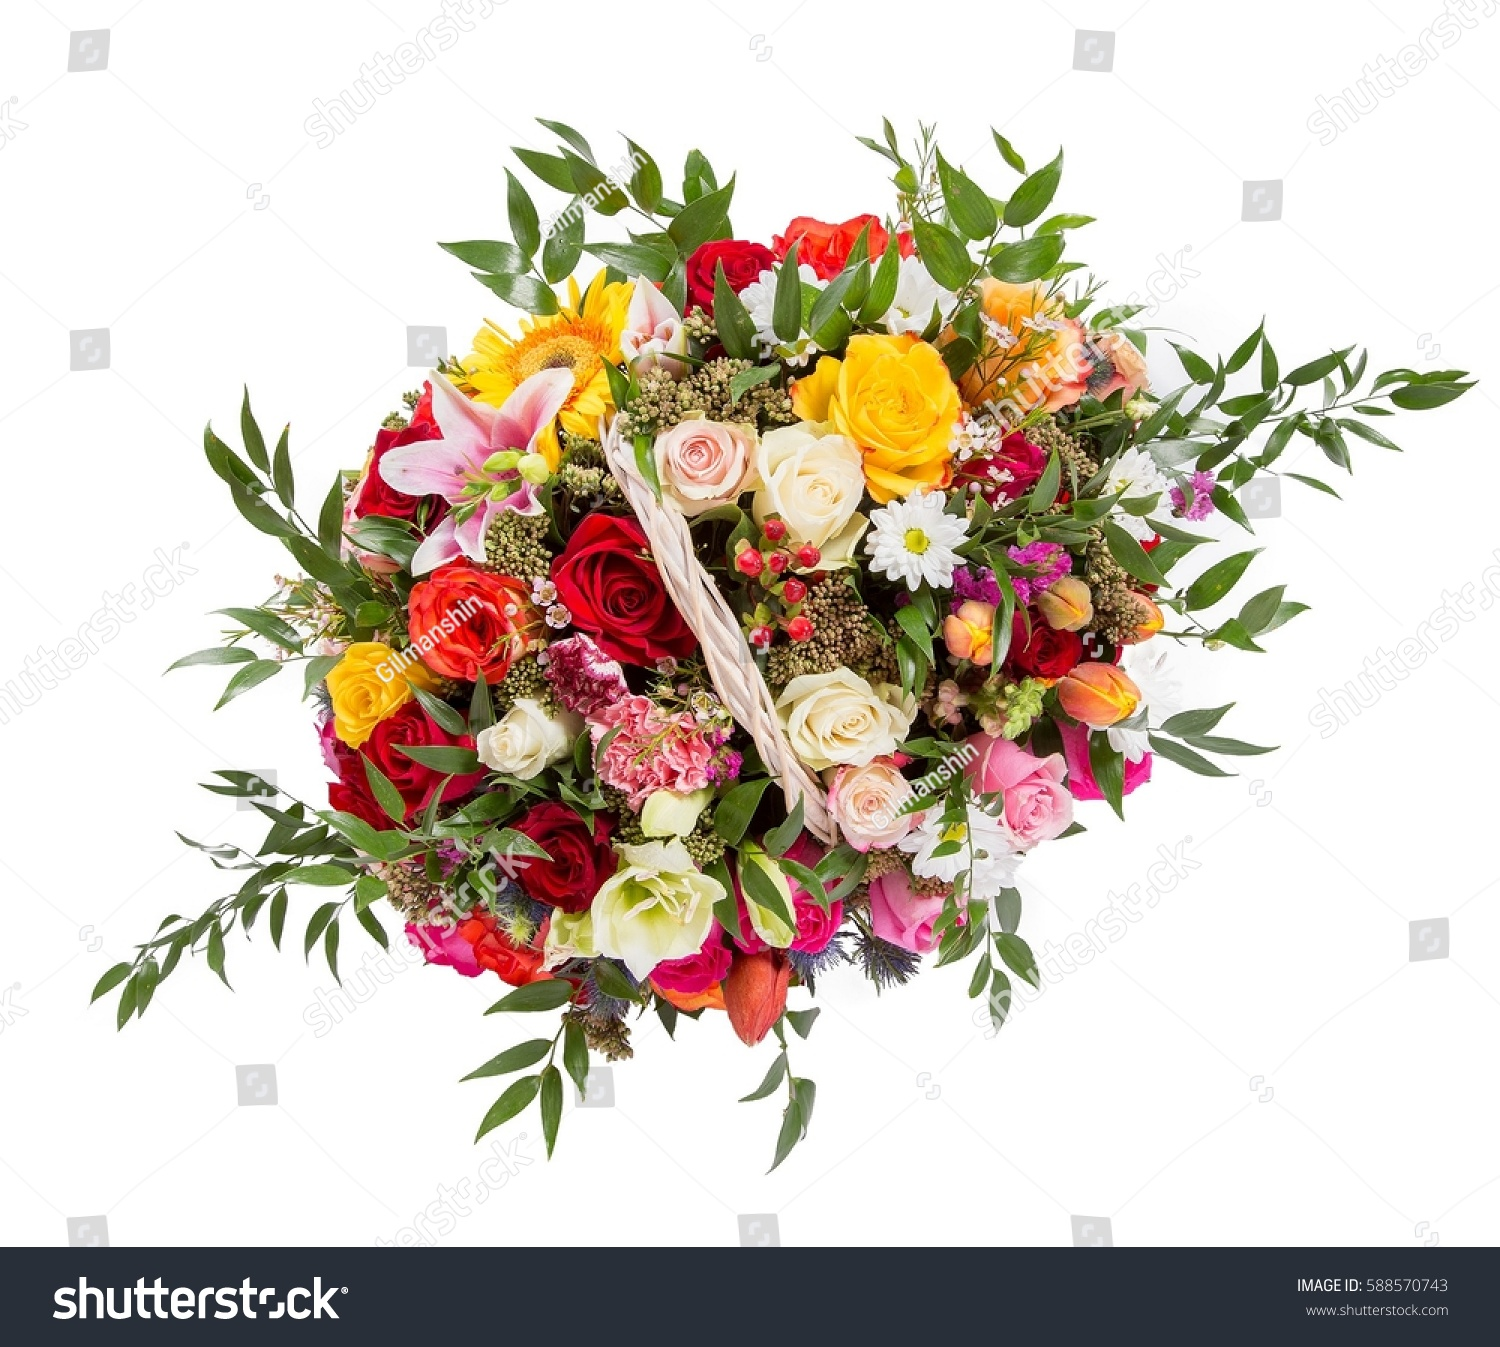 Bouquet of flowers seen from above roses chrysanthemum gerber bouquet of flowers seen from above roses chrysanthemum gerber carnation and goldenrod ez canvas izmirmasajfo